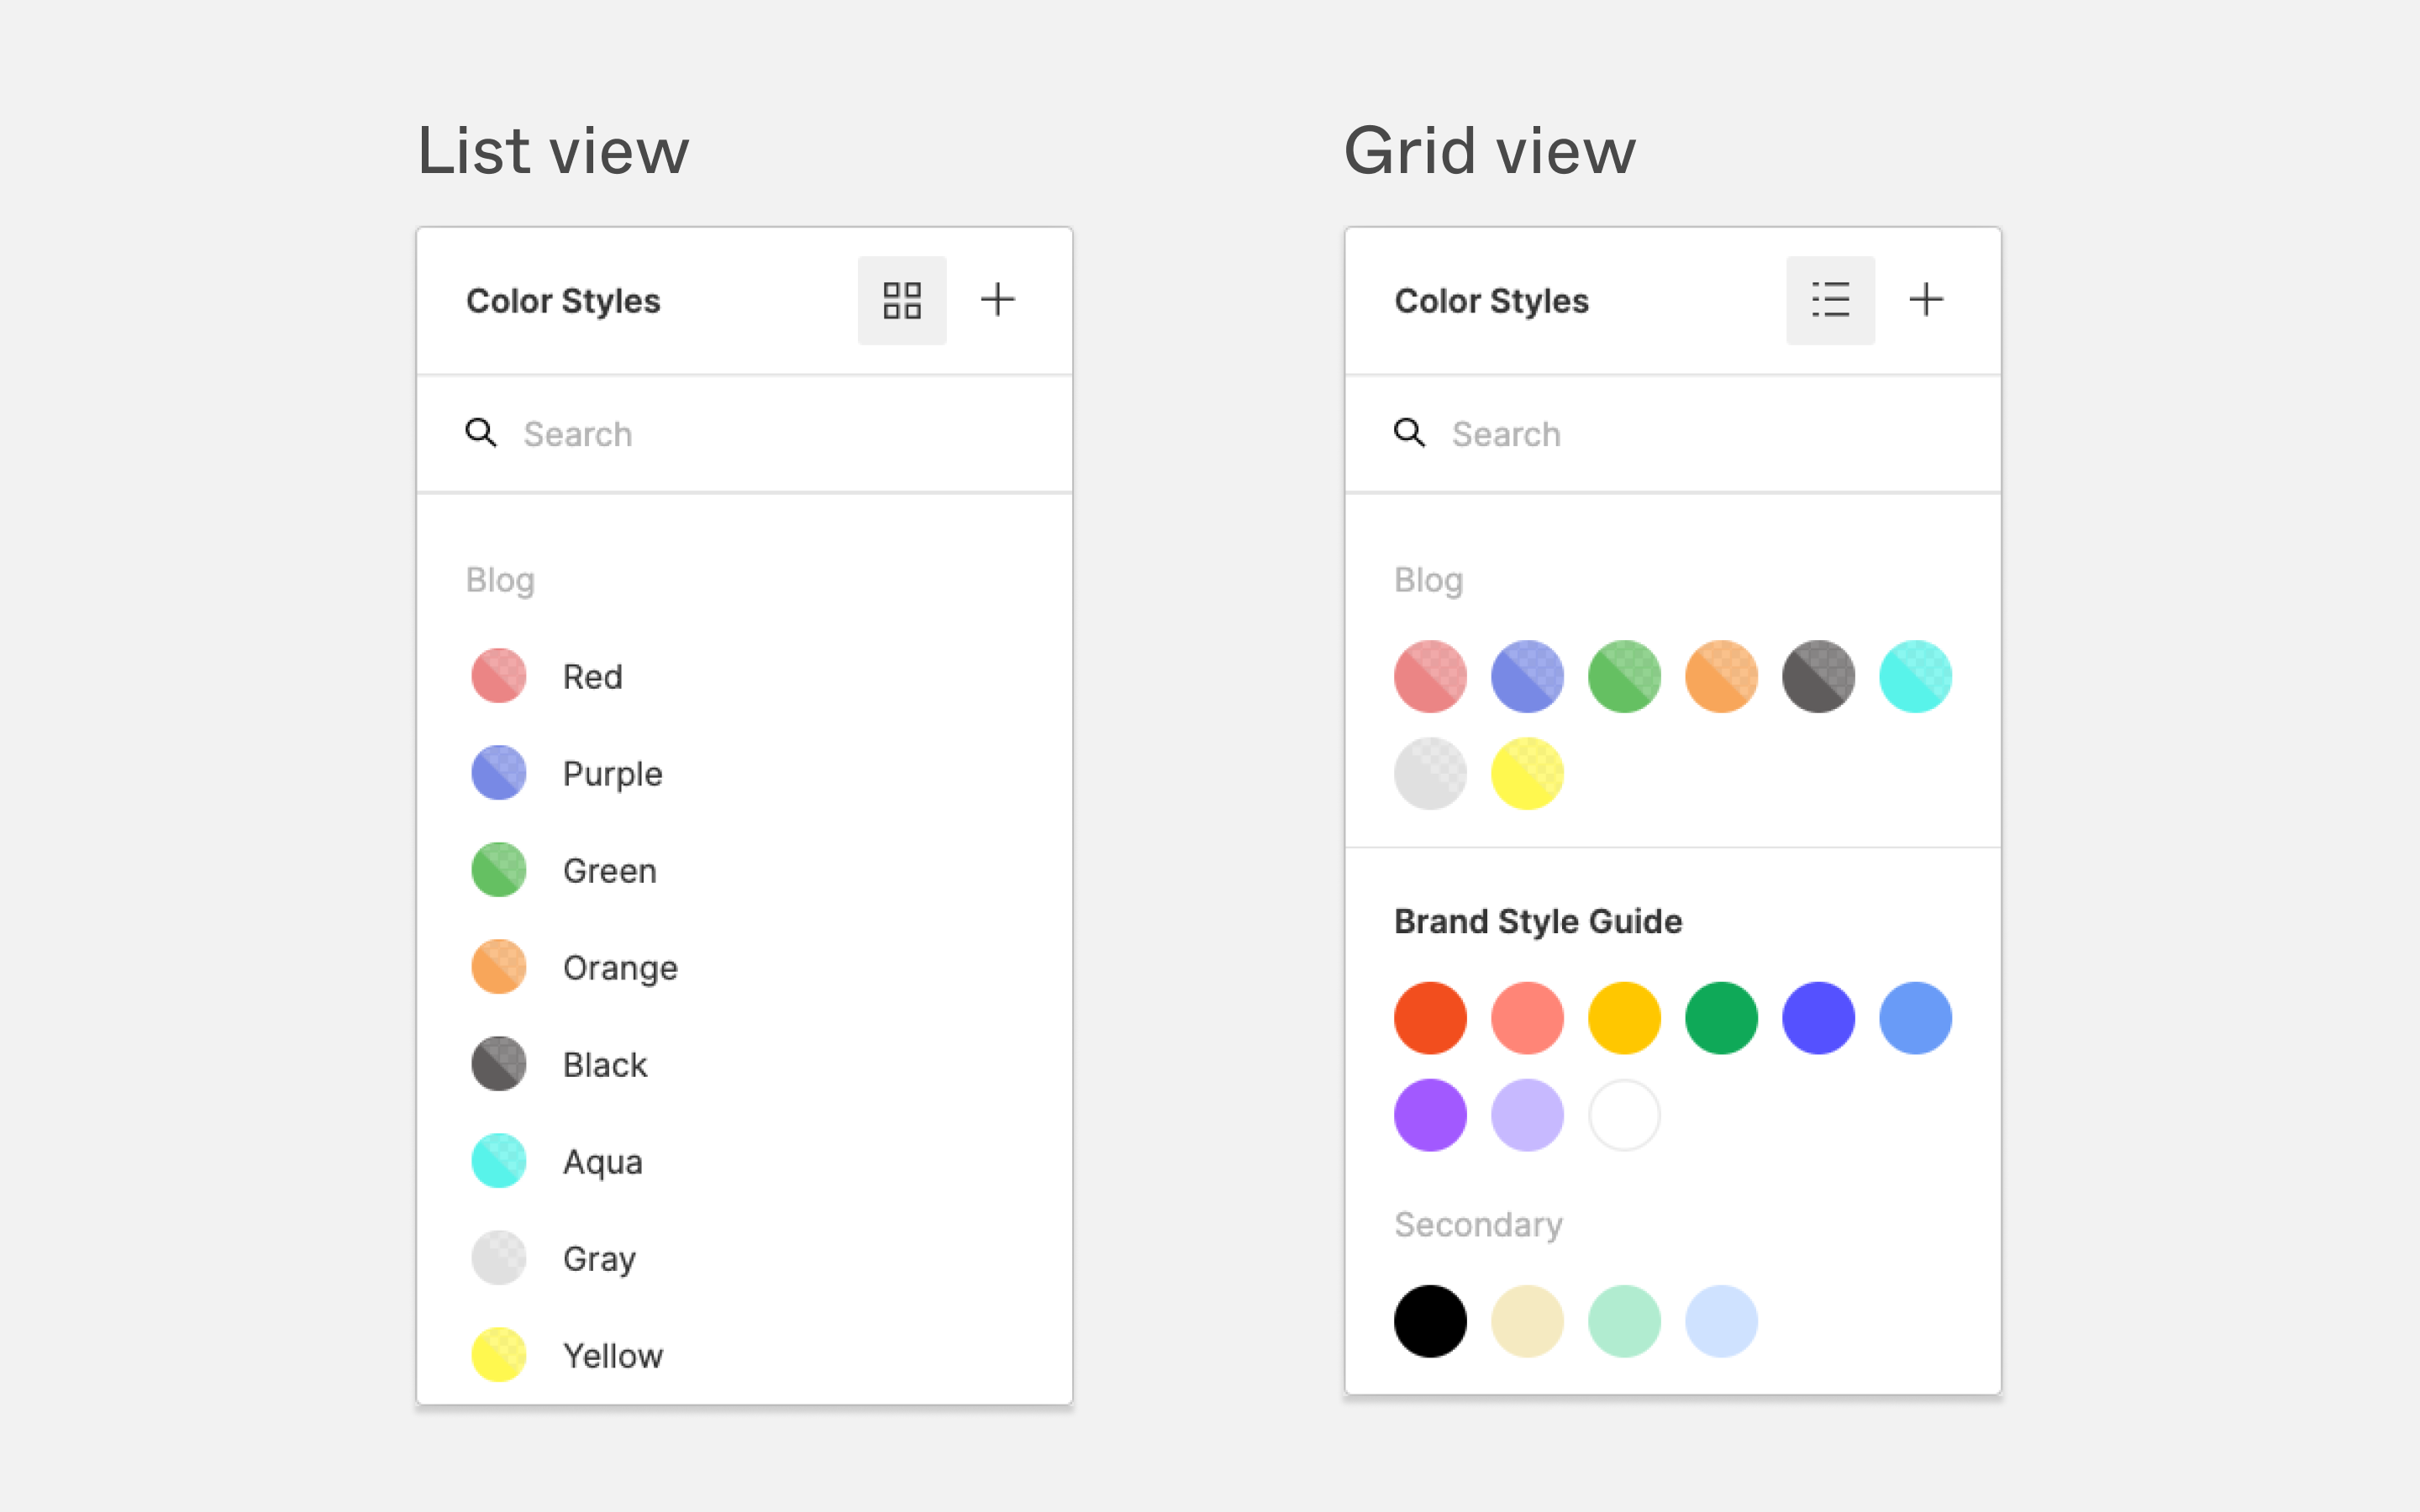 Color_Style picker list and grid views